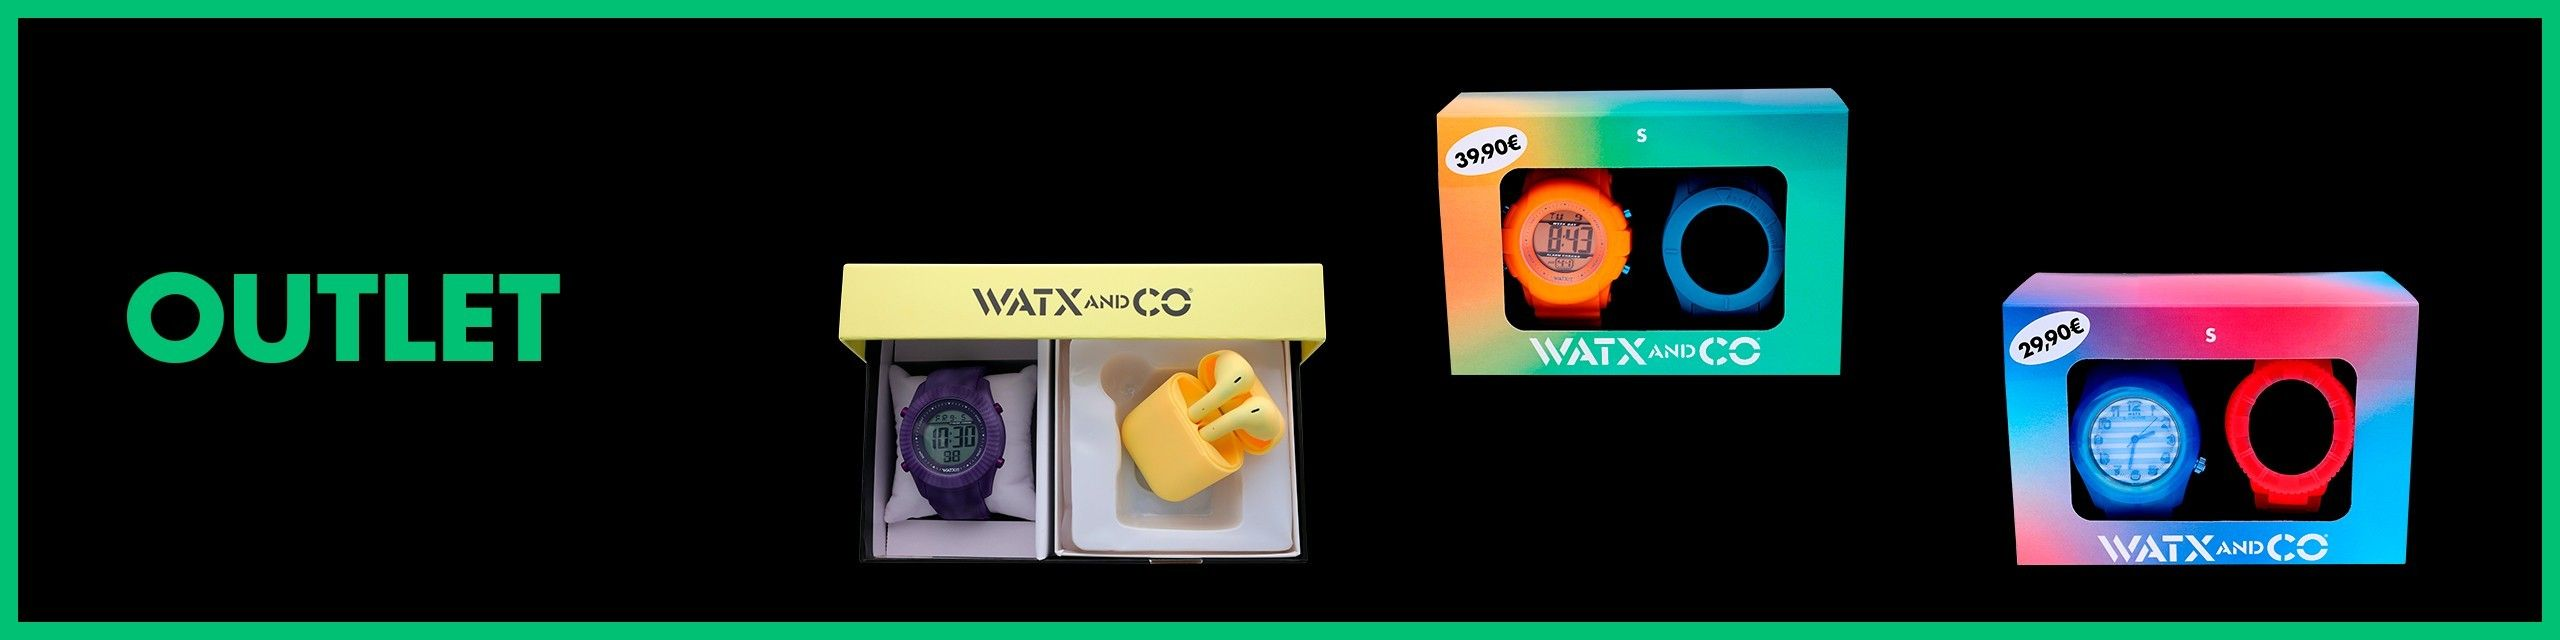 WatxandCo Outlet